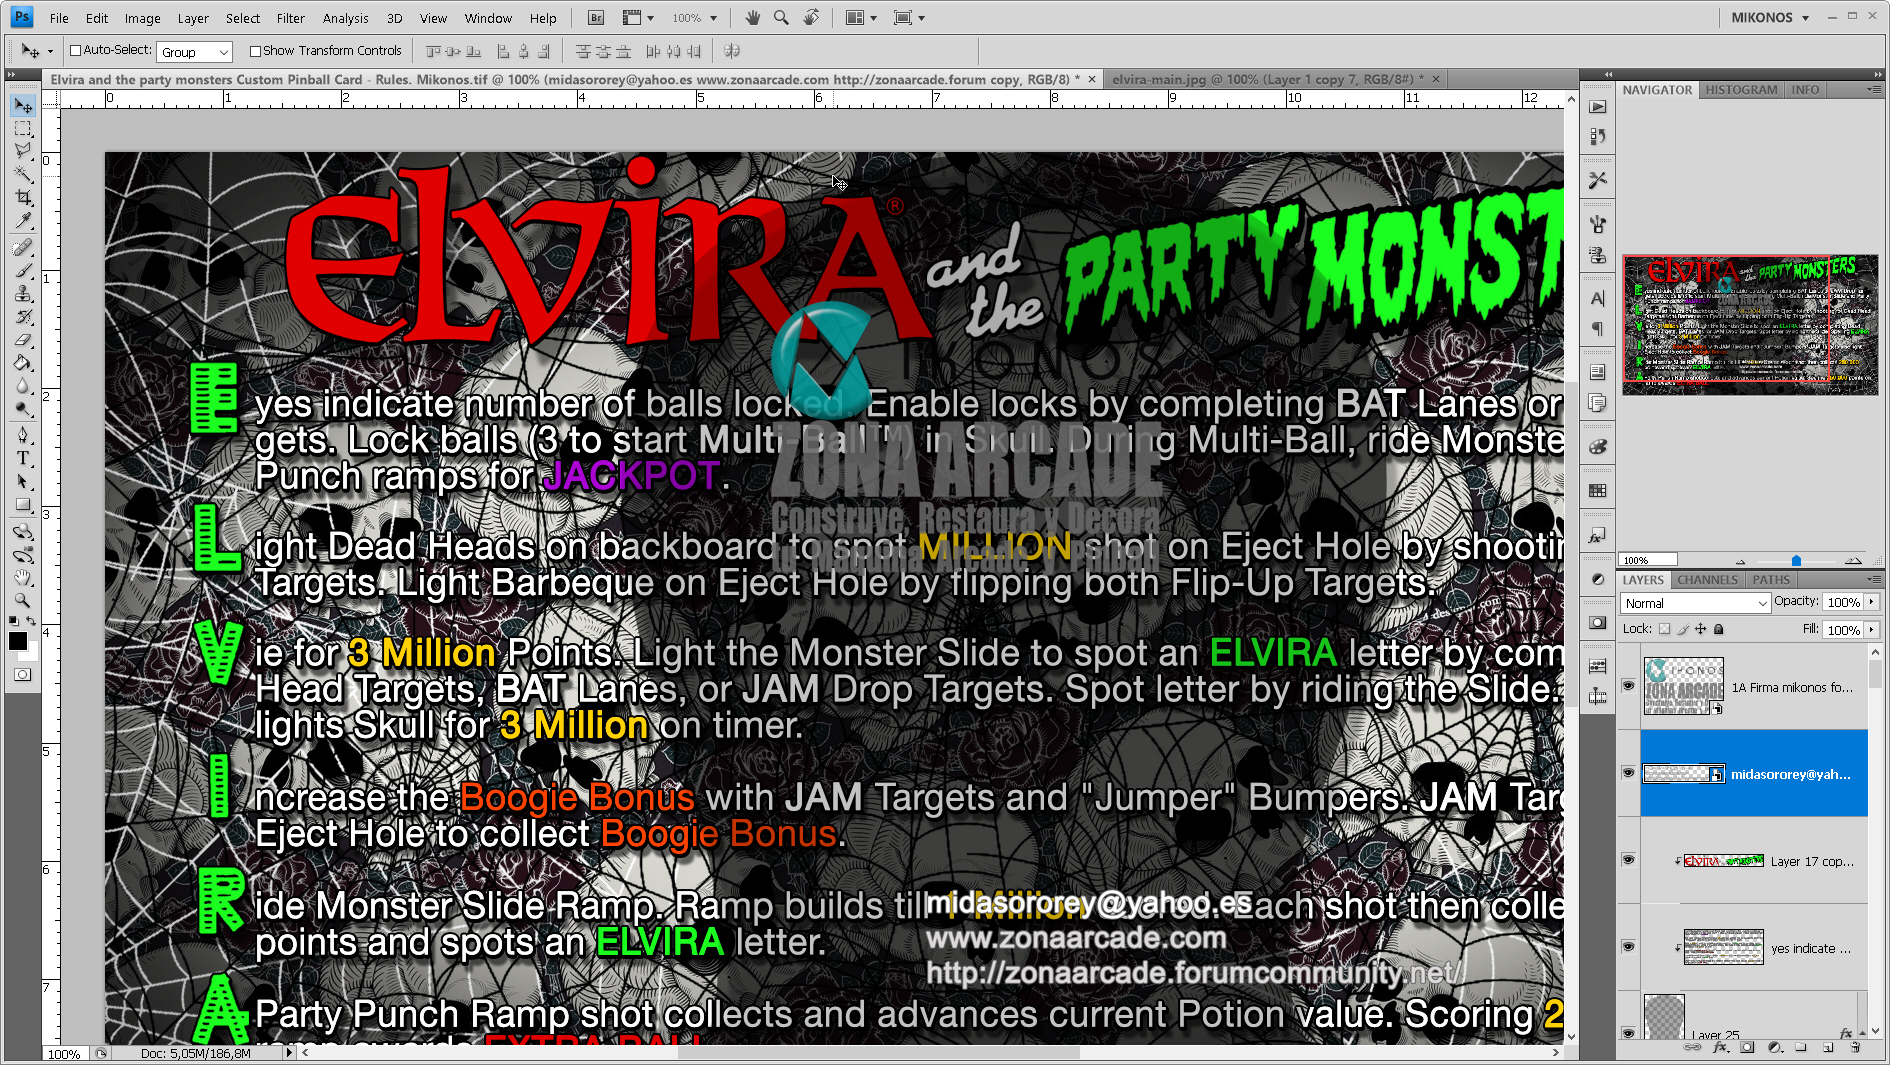 Elvira%20And%20The%20Party%20Monsters%20Pinball%20Card%20Customized%20-%20Rules.%20Mikonos2.jpg